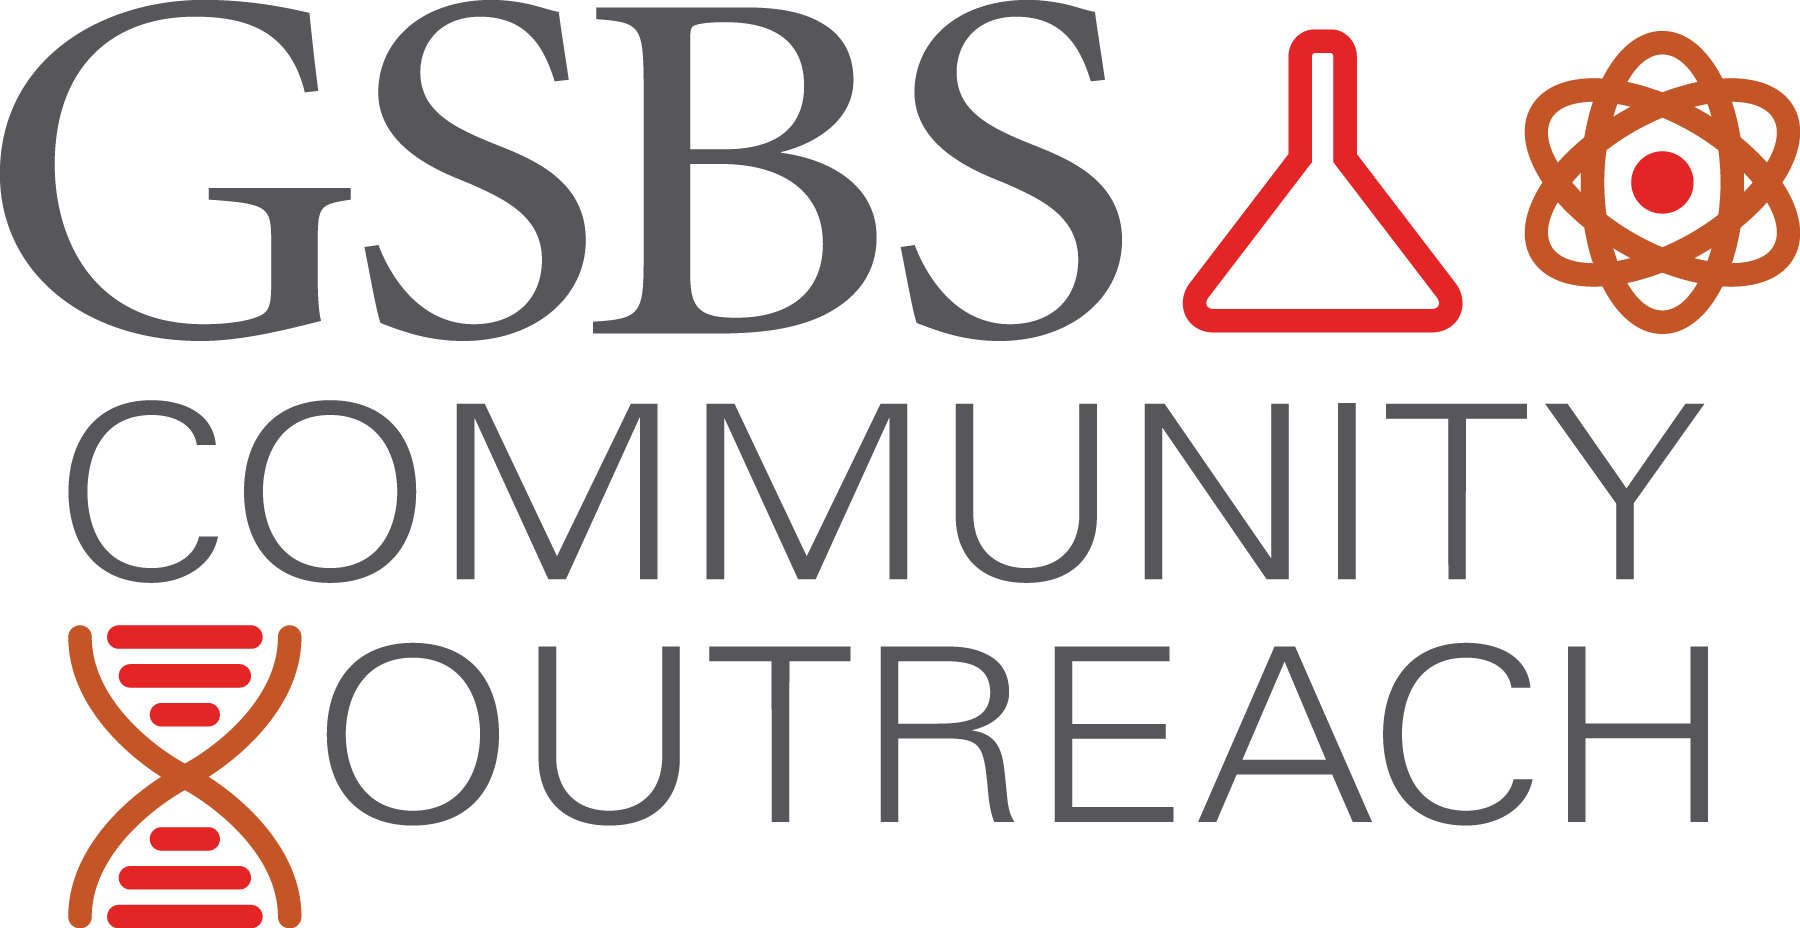 GSBS Outreach Logo